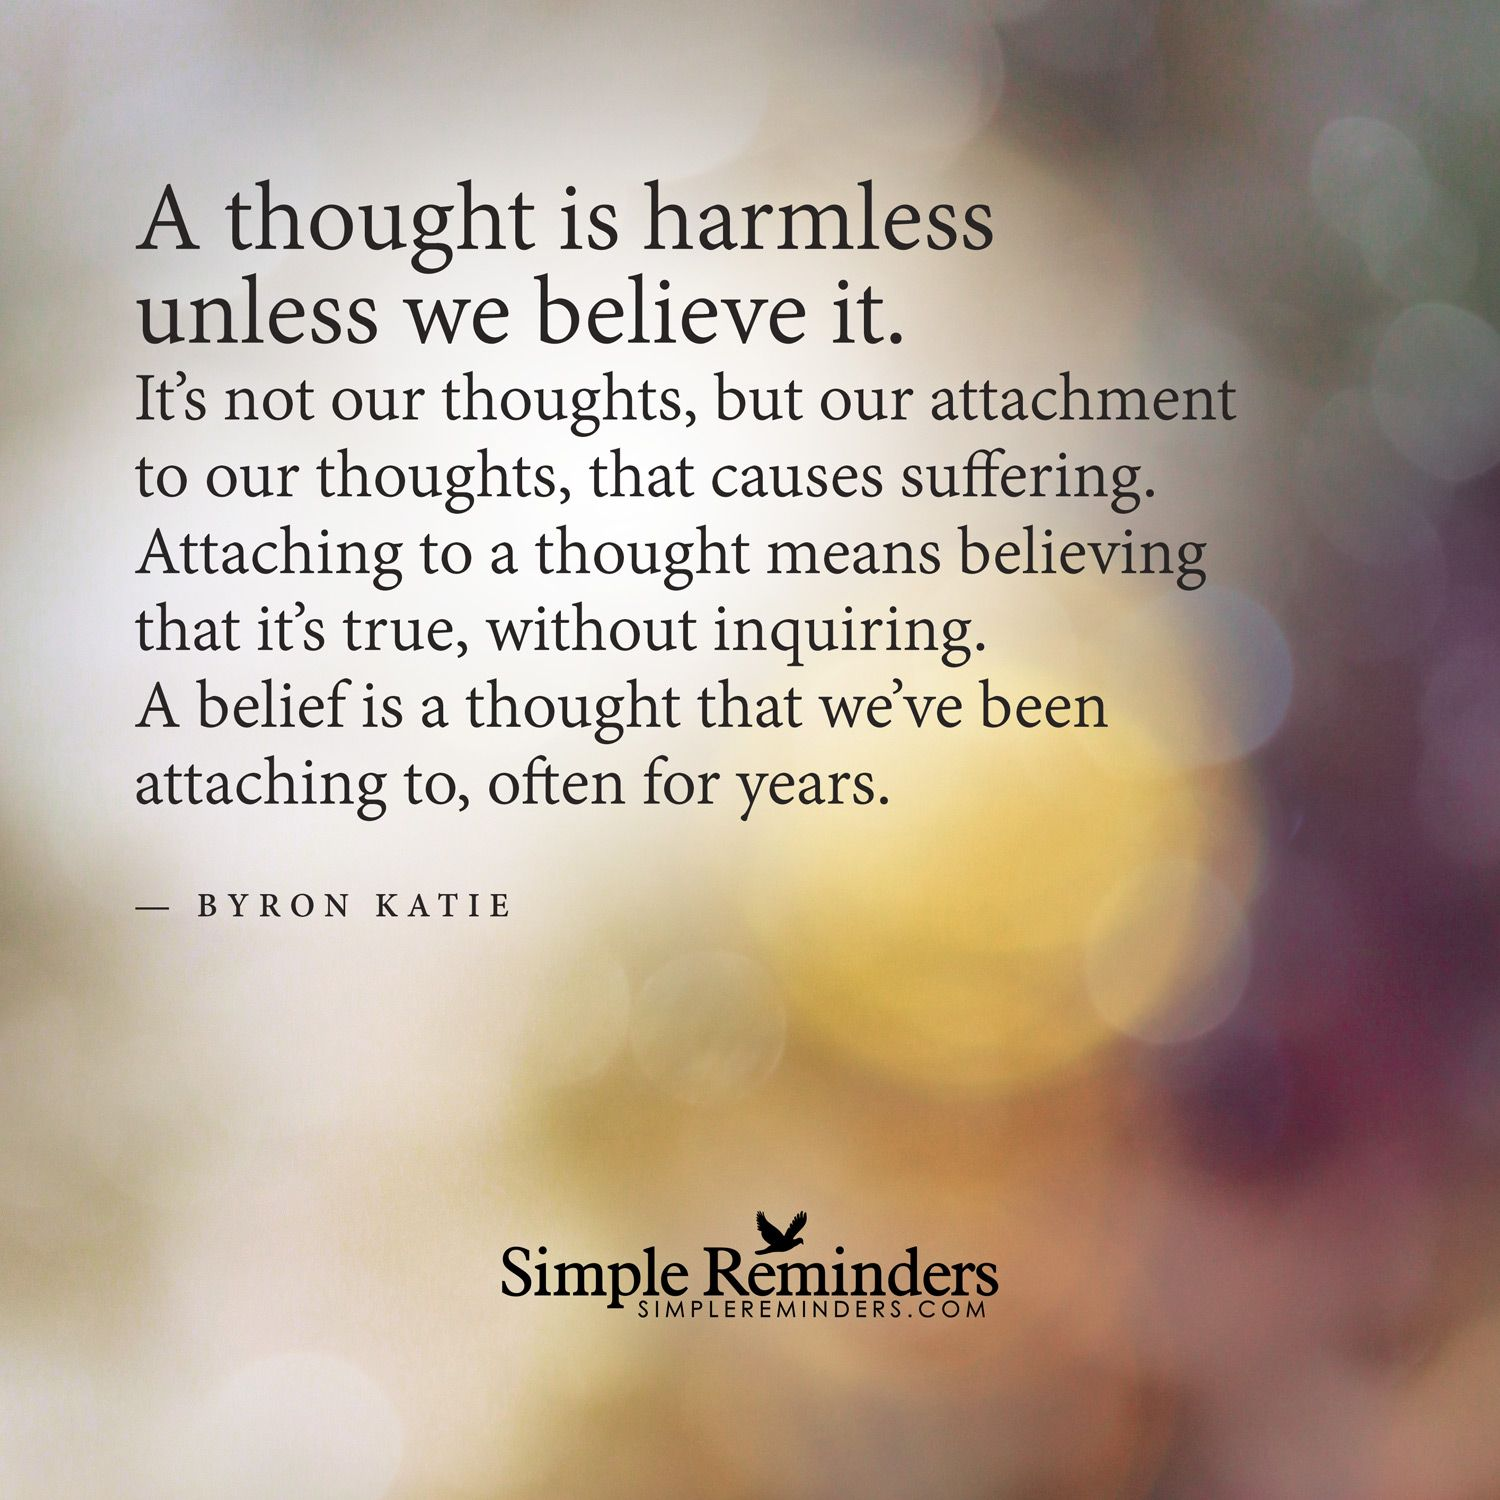 Byron Katie Quotes A Thought Is Harmless Unless We Believe It A Thought Is Harmless